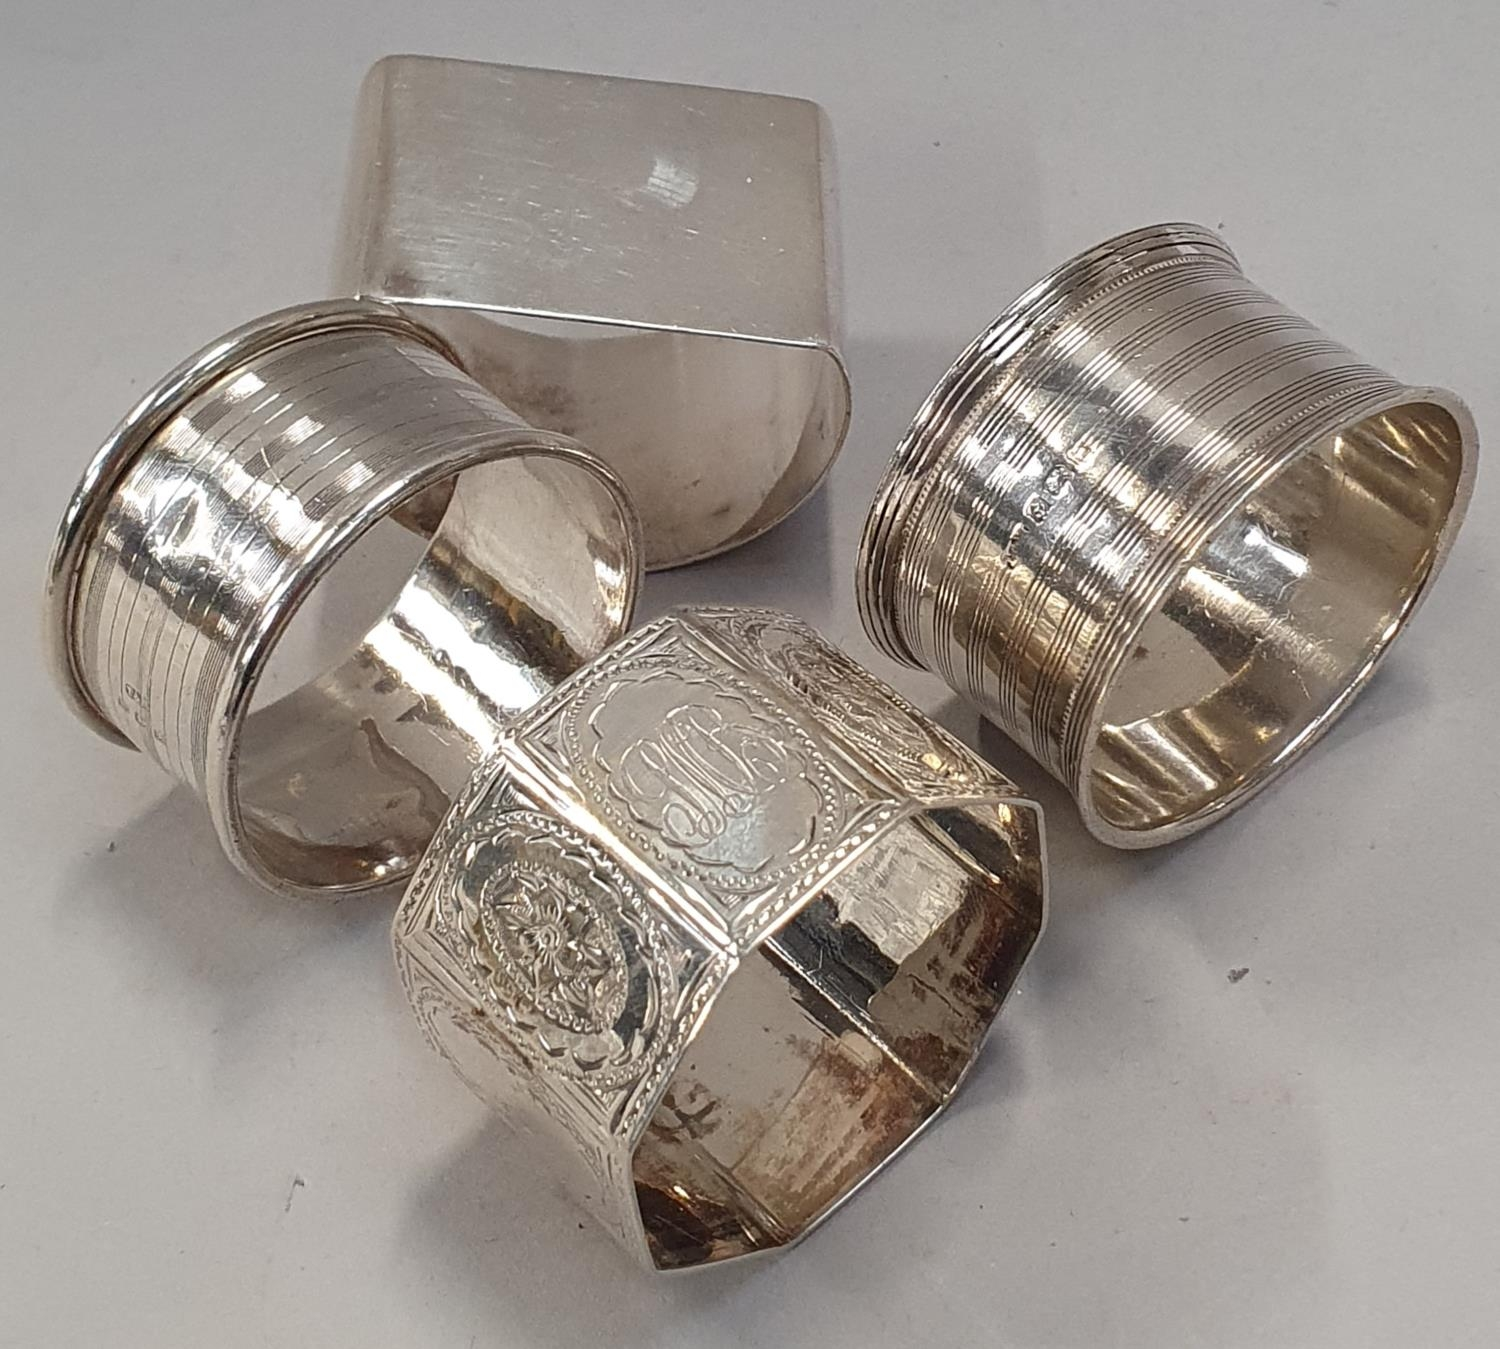 4 silver napkin rings together a baby rattle - Image 3 of 5